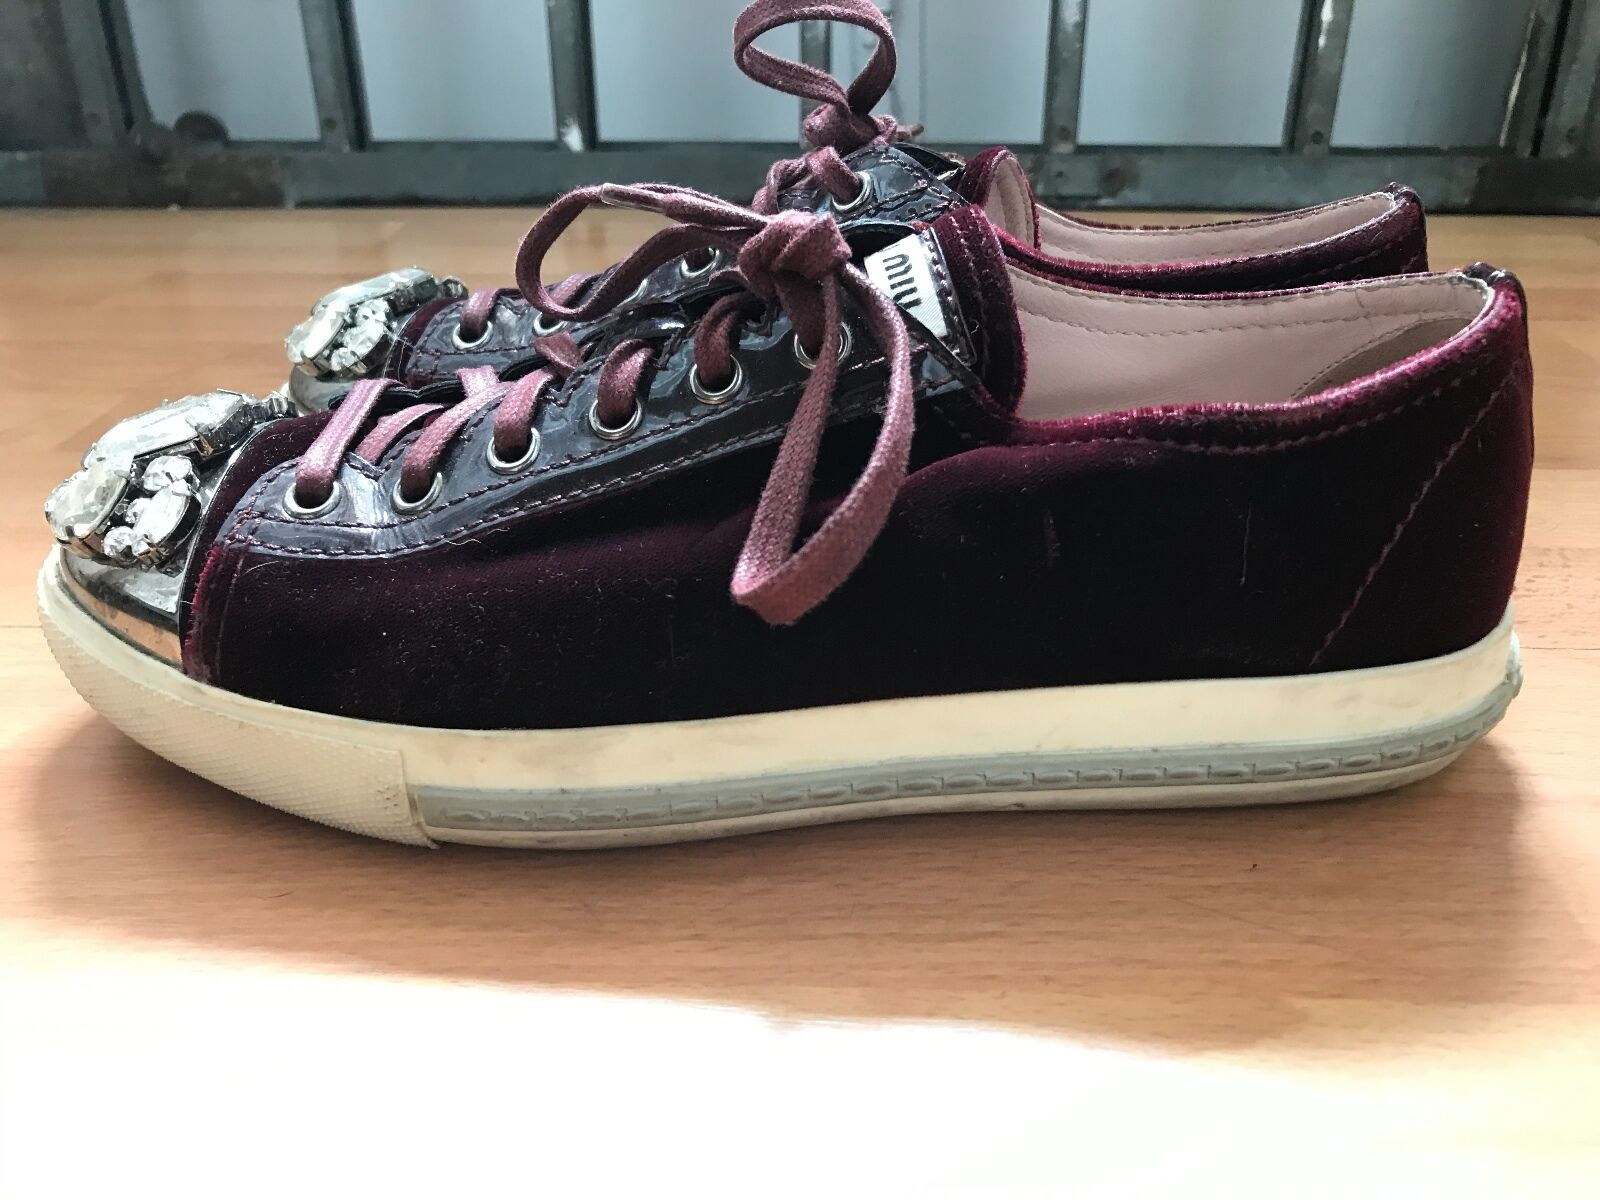 MIU MIU Embelished Bordeaux Velvet baskets 37,5 37,5 37,5 e1fa3f